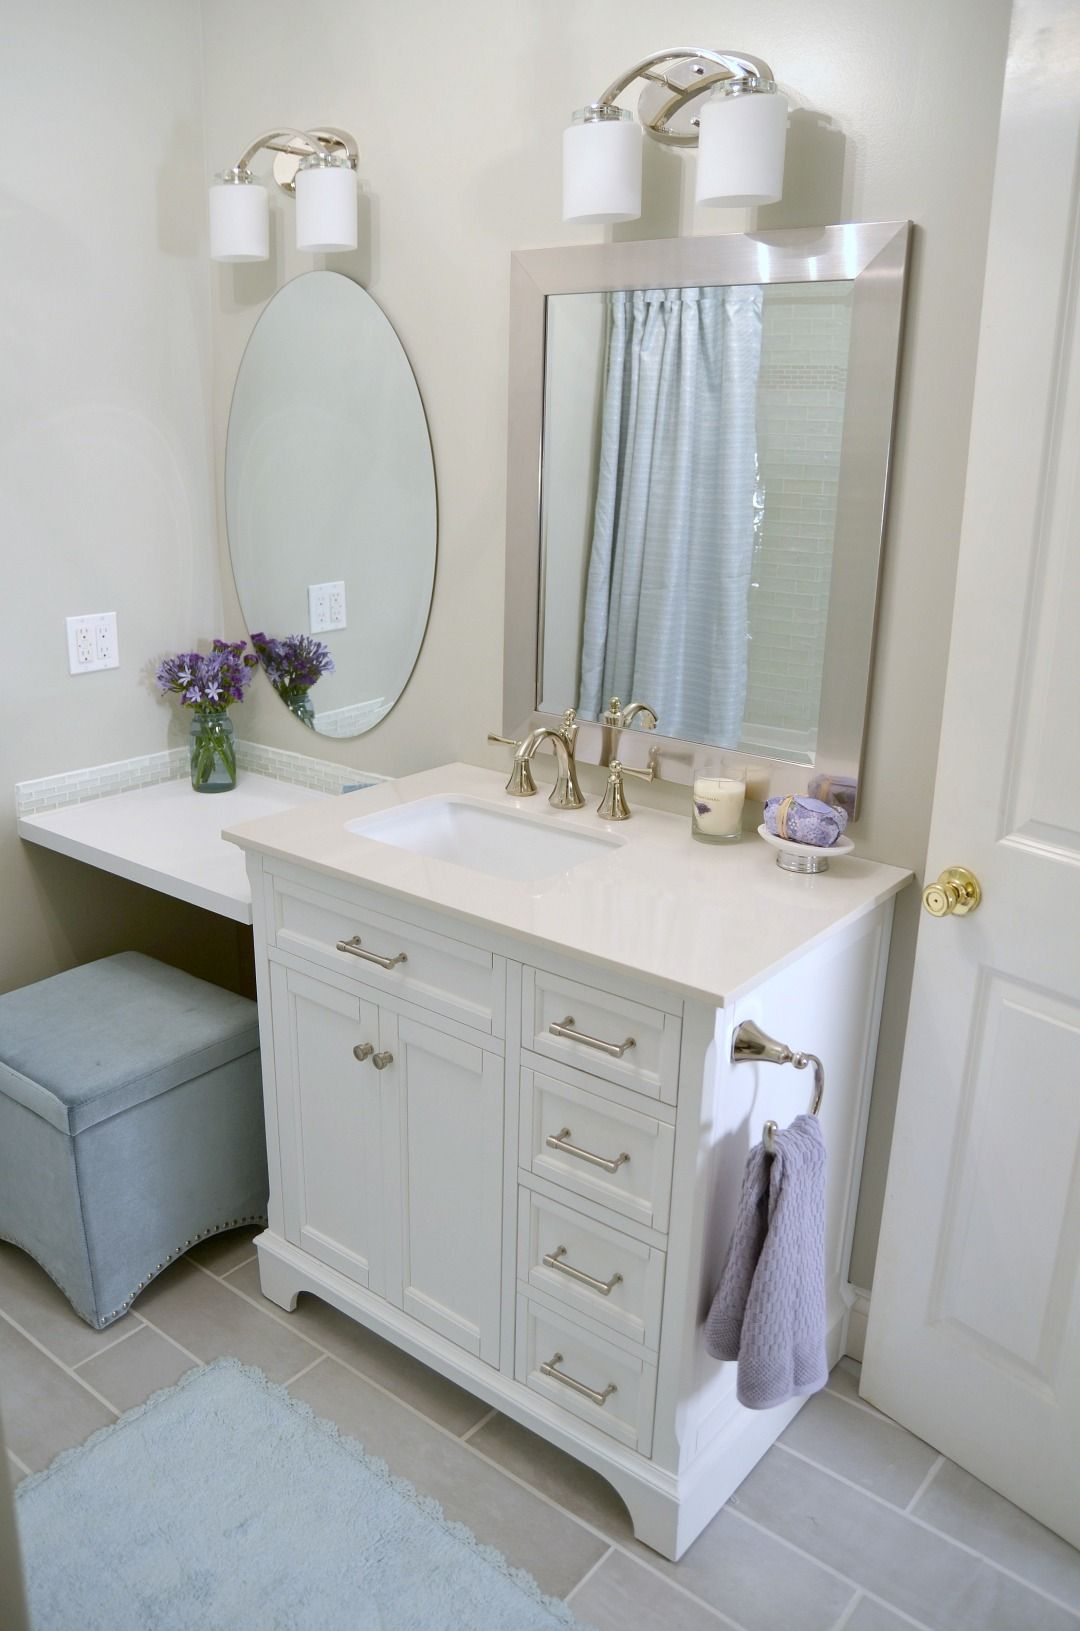 Lowe 39 s bathroom makeover reveal bathroom ideas bathroom rustic bathroom vanities lowes for Rustic bathroom vanities lowes